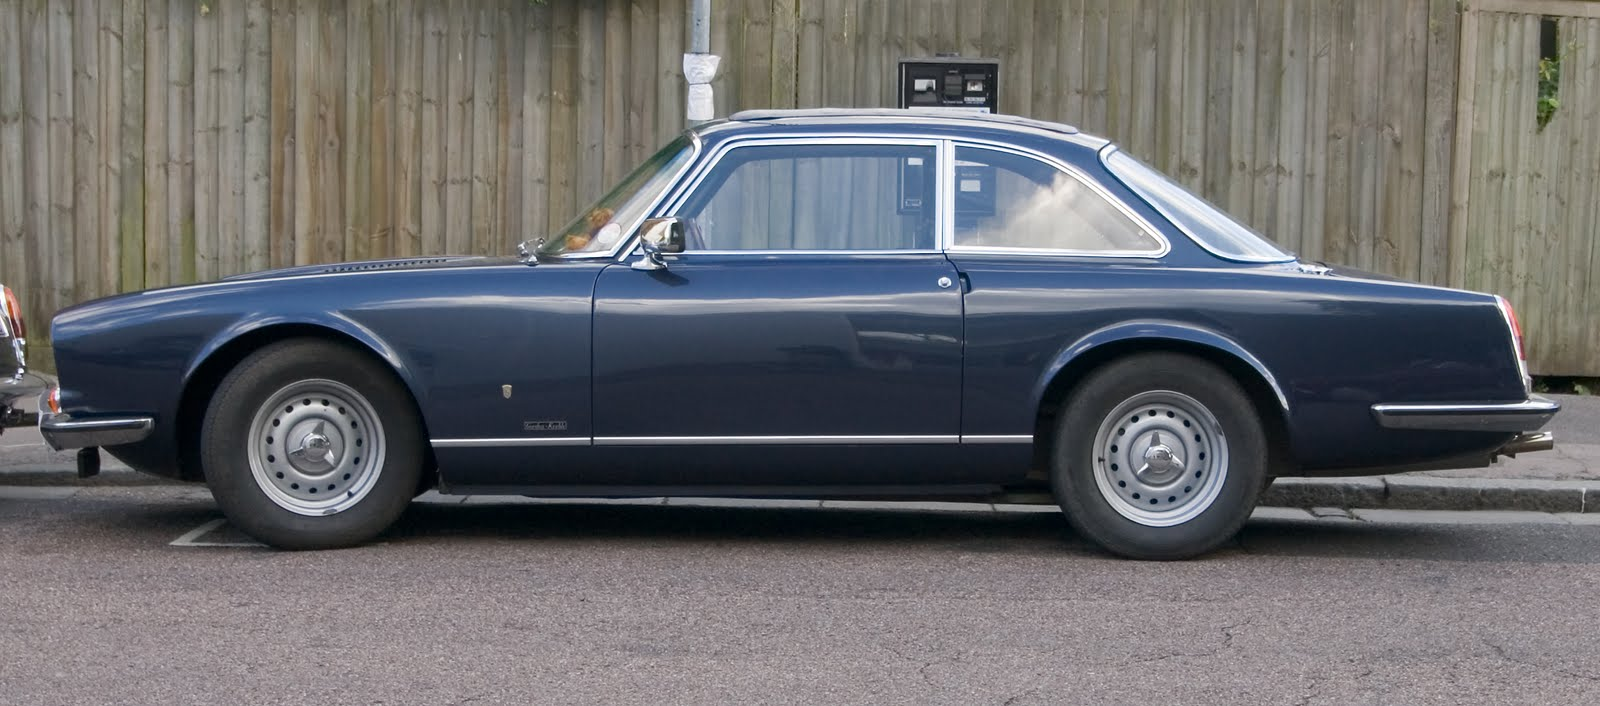 Gordon-Keeble GK1 - A Great, But Mostly Unknown Car